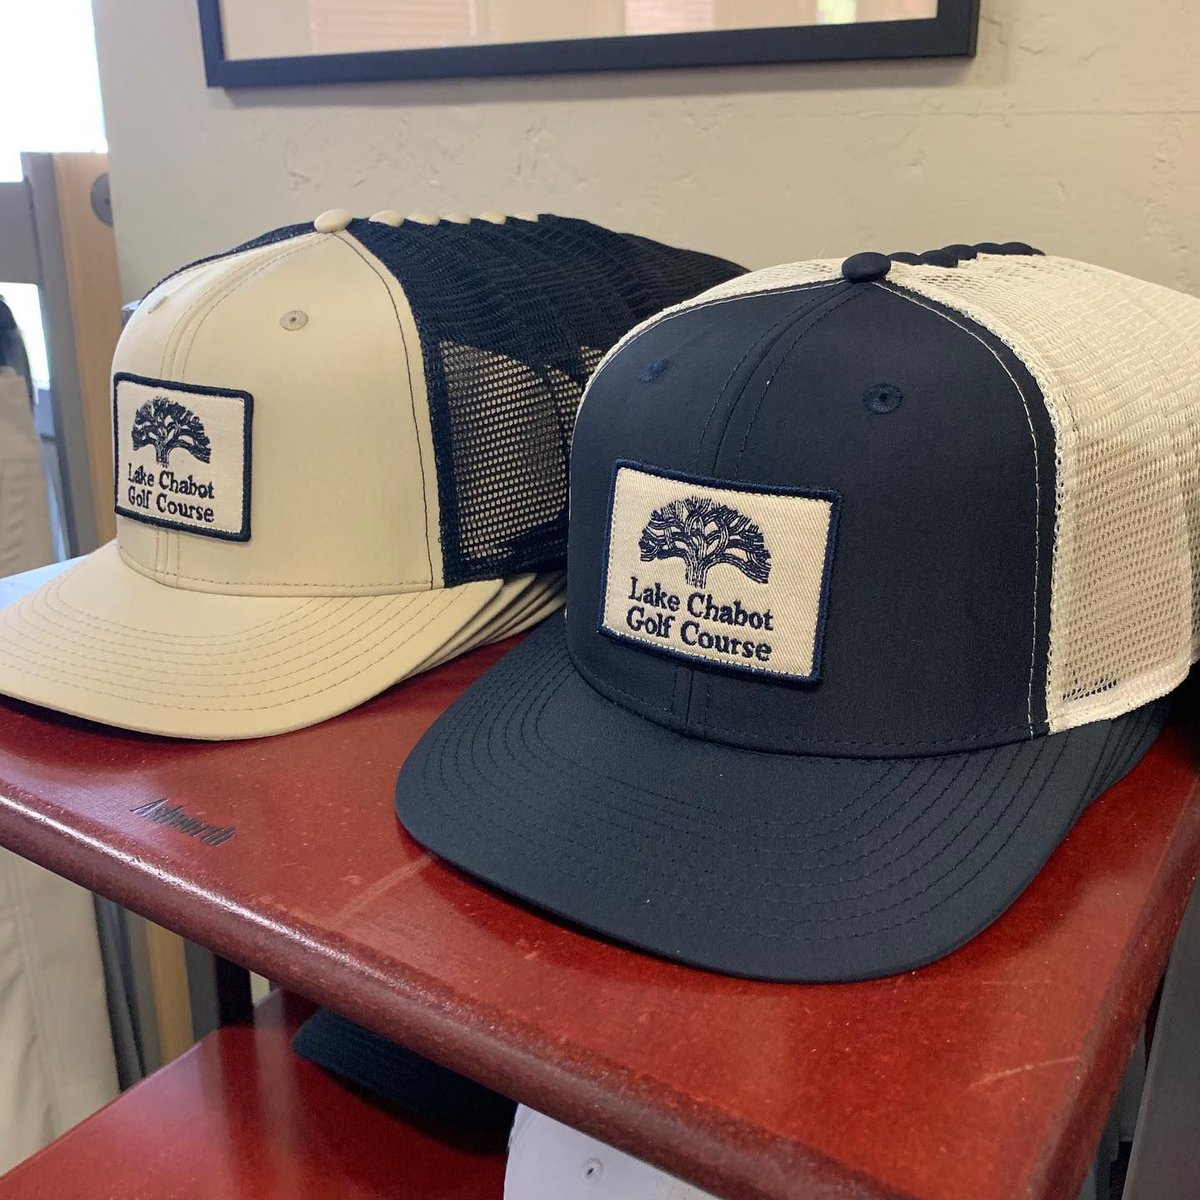 Reppin' to the fullest! Brand new #pukka snapback, stretch fit, and visor logo hats have arrived to the Lake Chabot Golf Course! Check 'em out in our Pro-Shop!⠀ ~⠀ ~⠀ ~⠀ #lakechabotgolf #lakechabot #golf #oakland #snapback #visor #fitted #eastbay #eastbaygolf